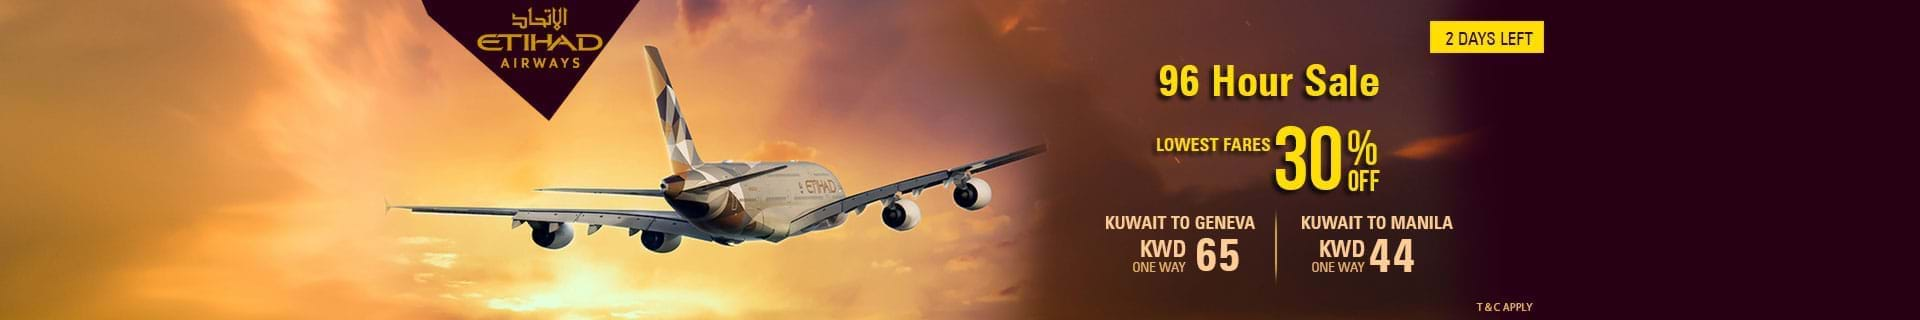 Book Flights from Kuwait to Major Destinations Starting from KWD 88